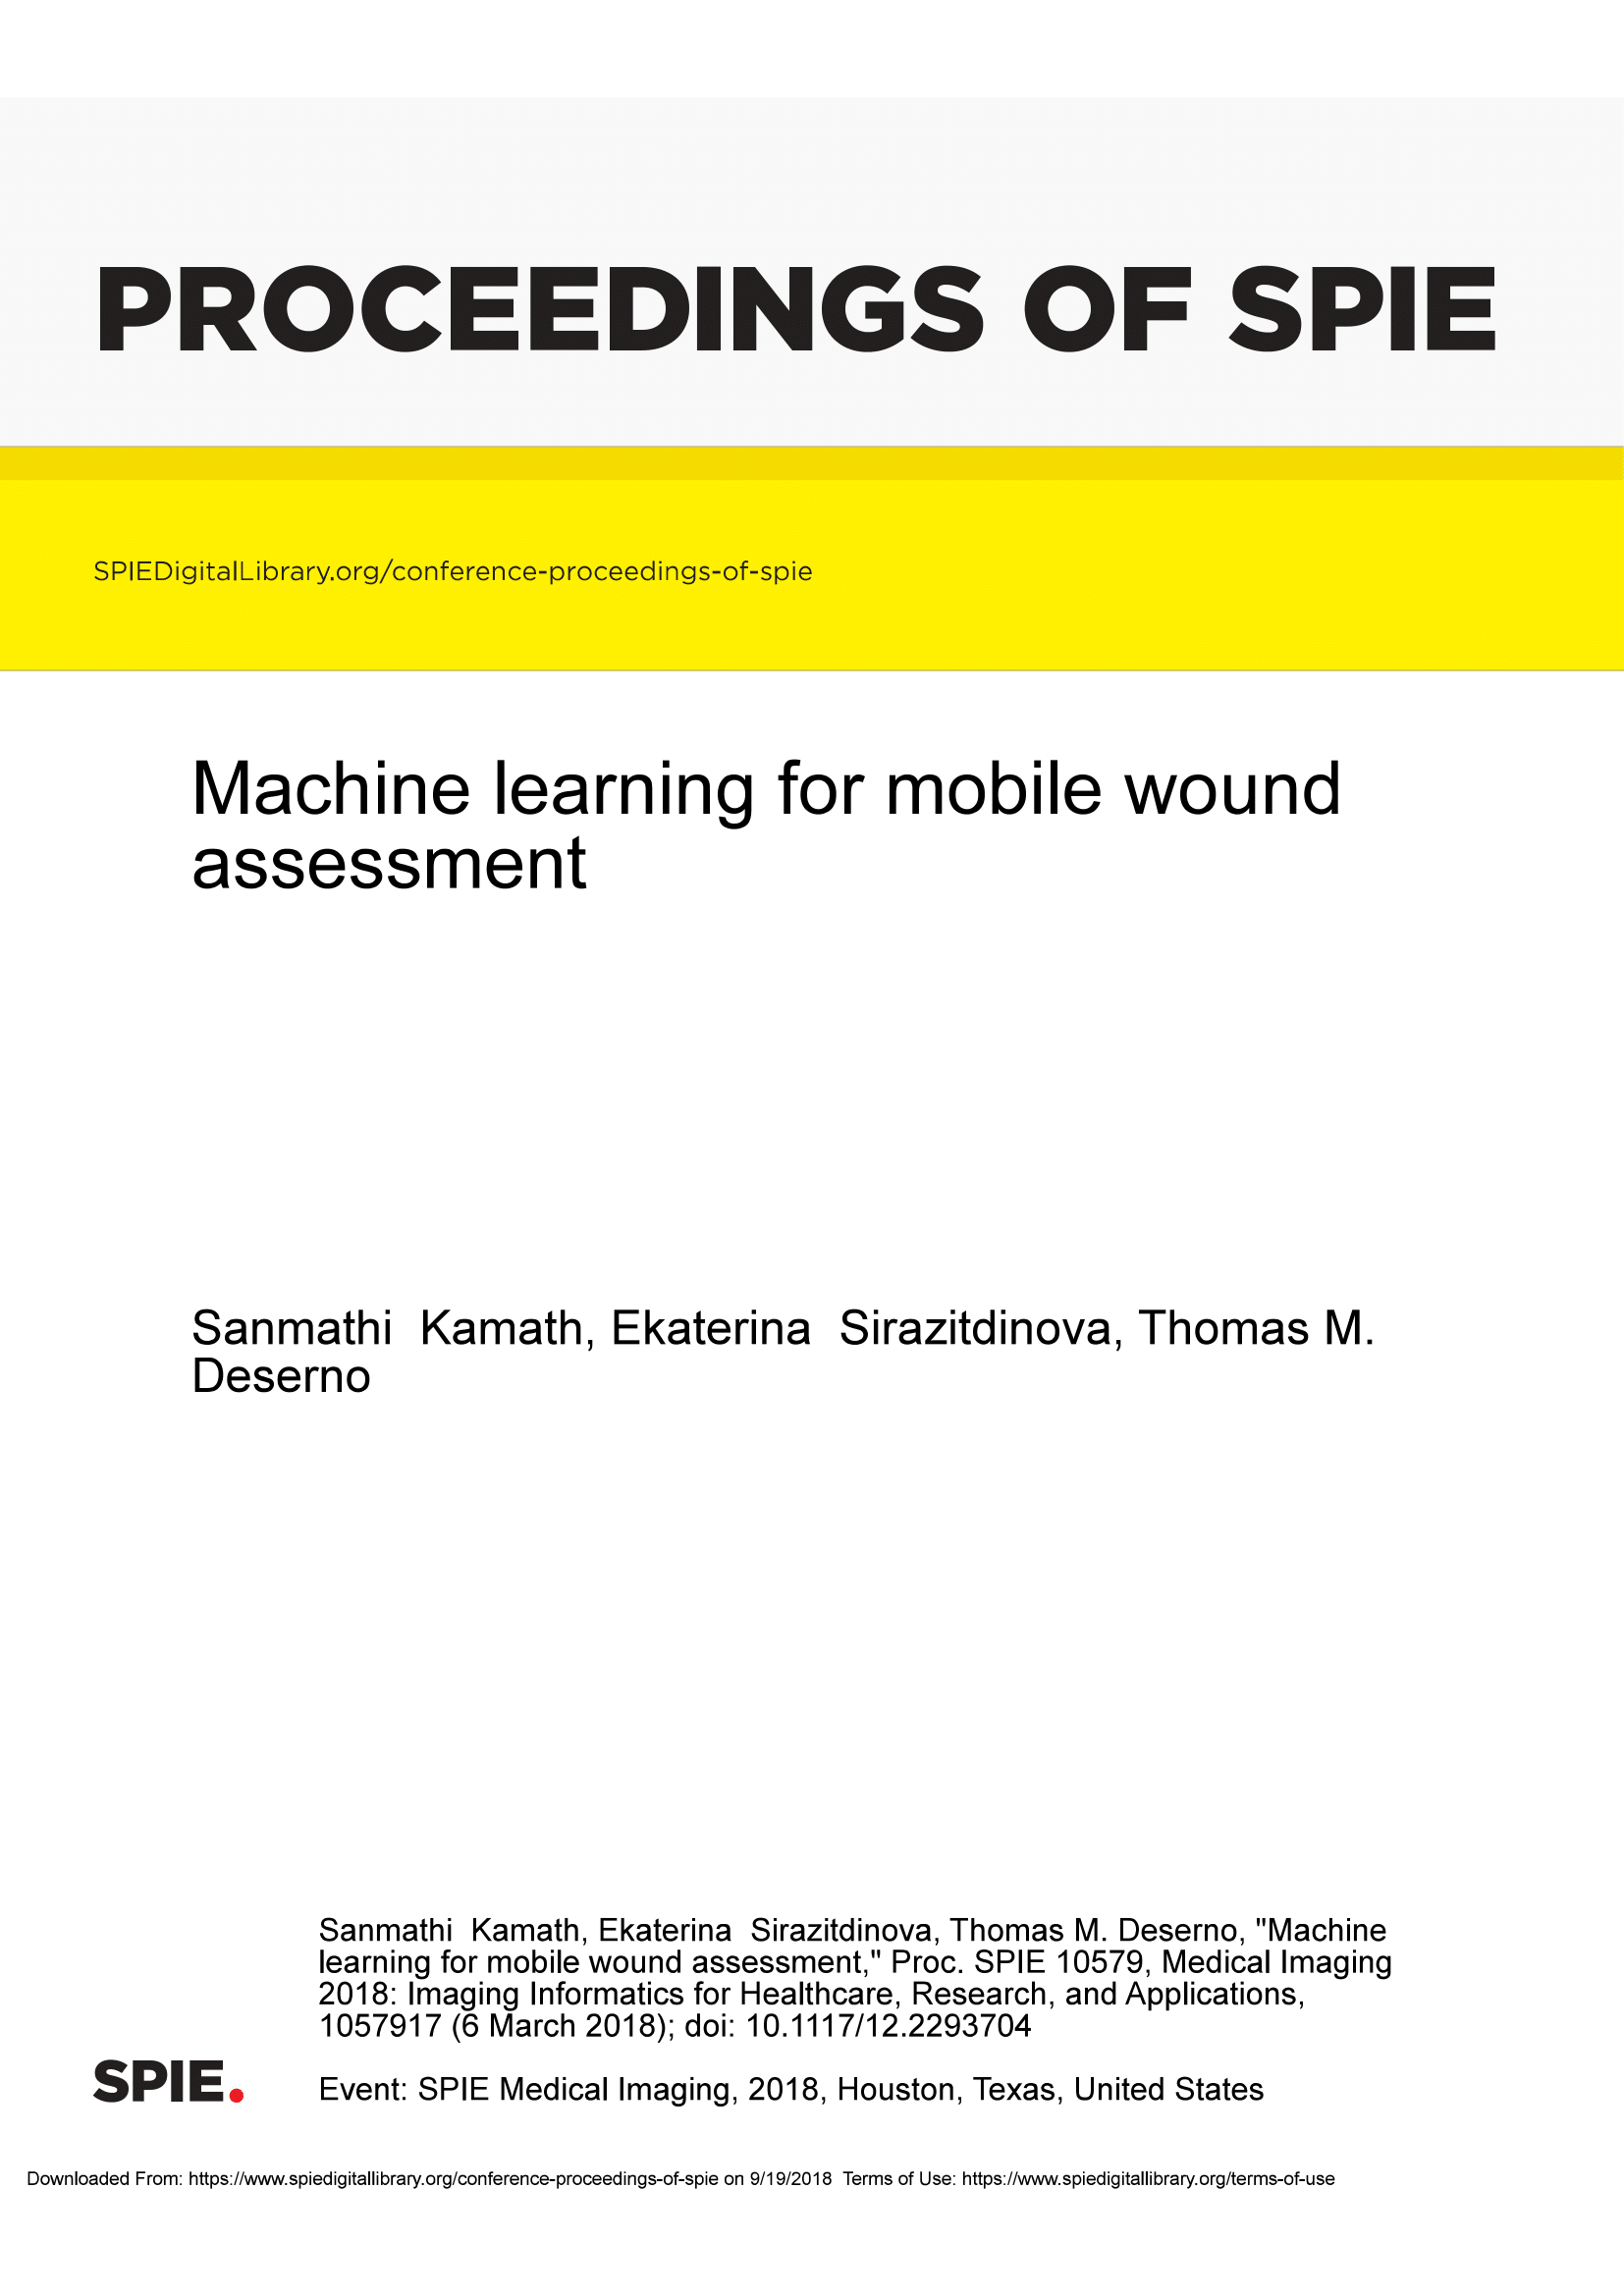 Machine learning for mobile wound assessment